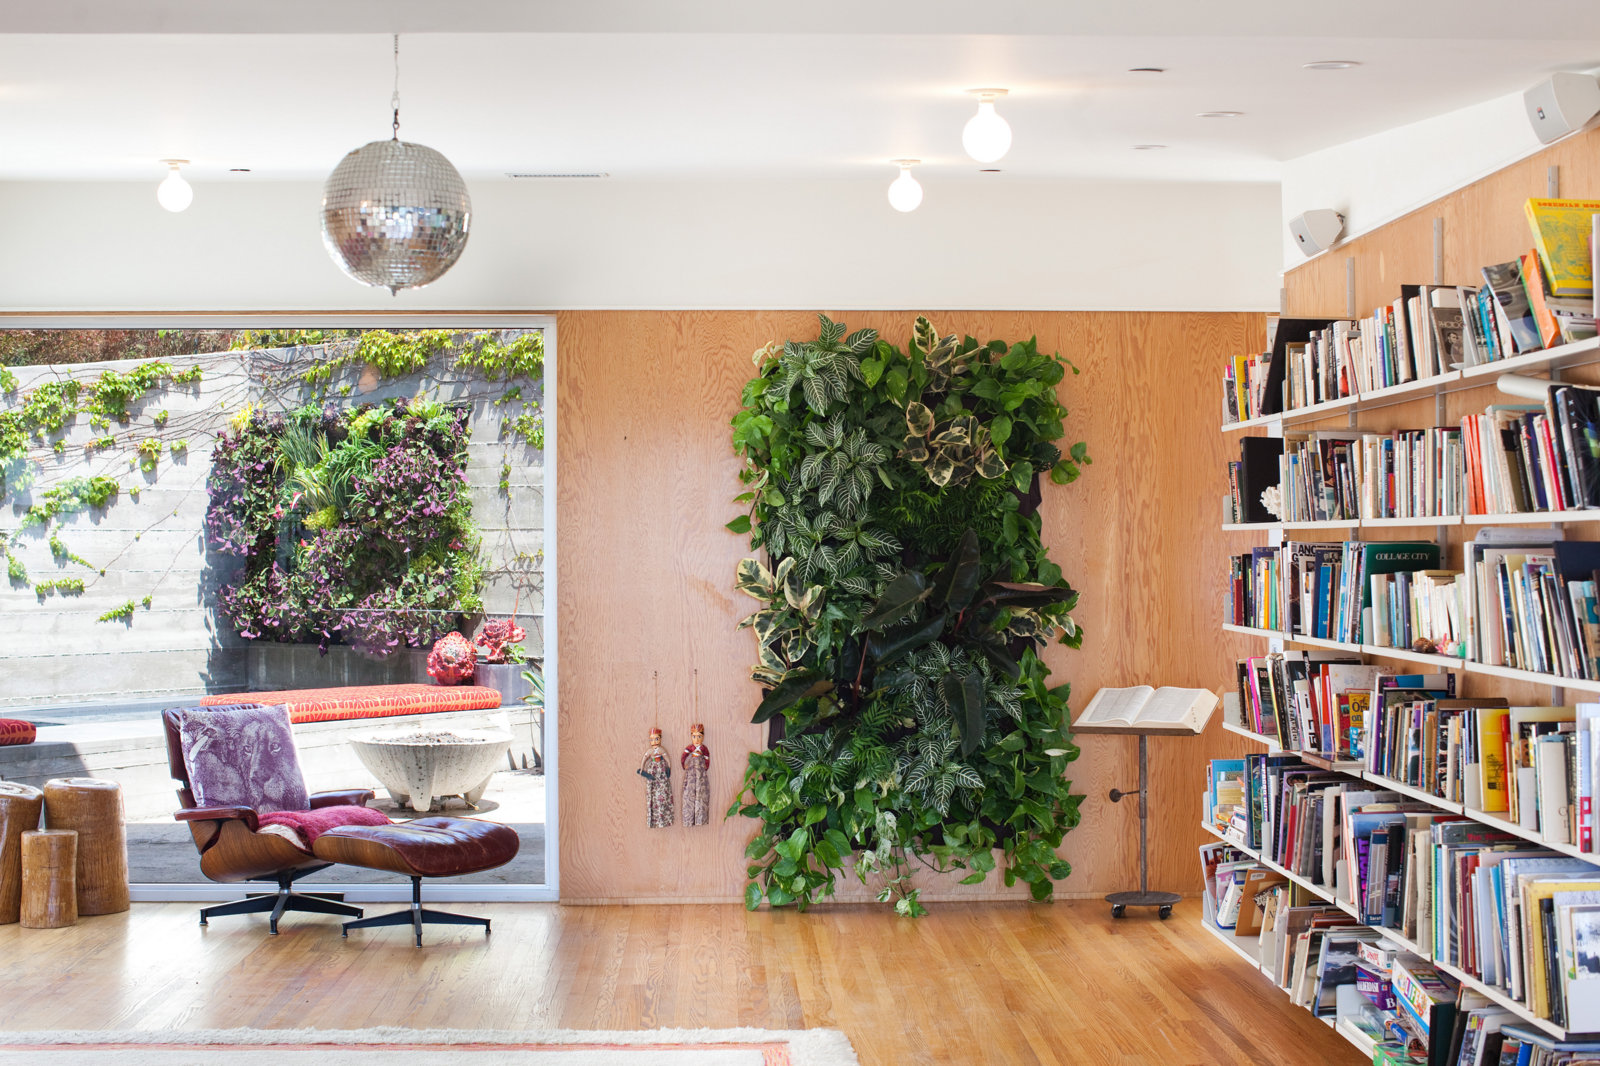 Indoor Plant Décor Inspires with Houseplants